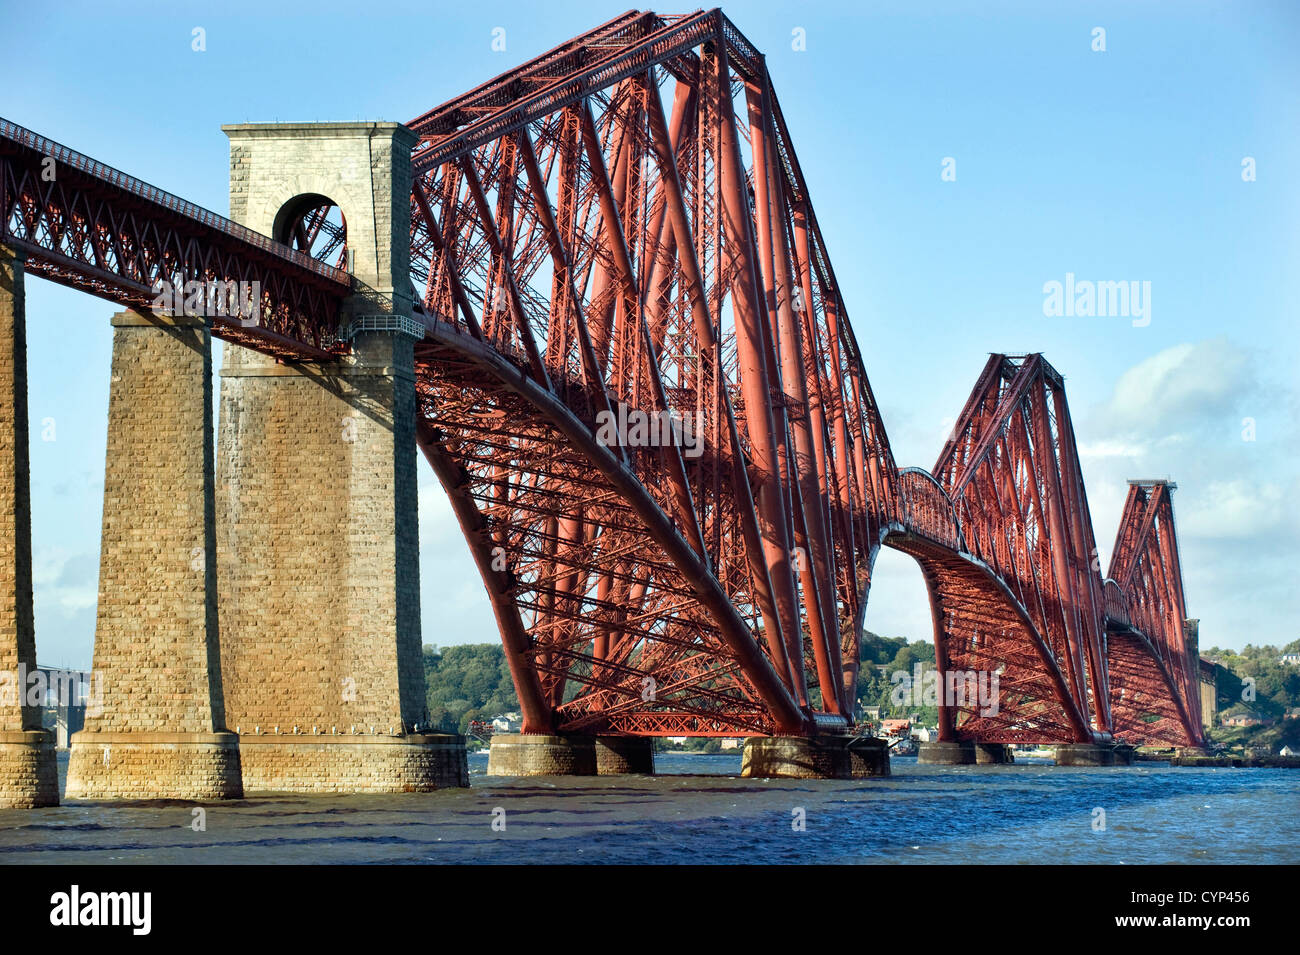 The Forth Railway Bridge pictured from the shore of the Firth of Forth at South Queensferry, Fife Scotland UK - Stock Image